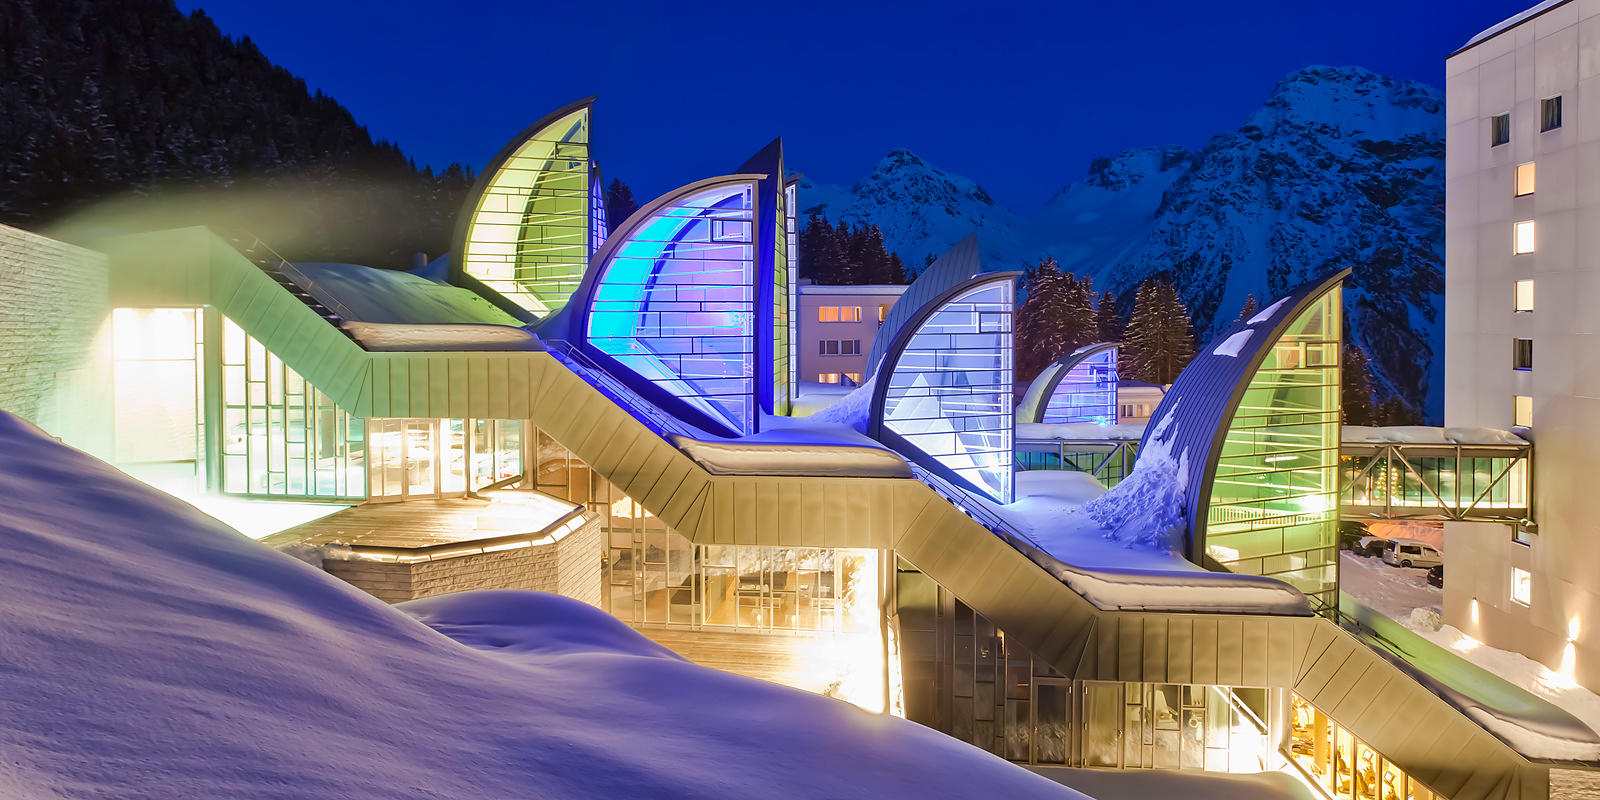 Spa Bergoase, Grand Hotel Tschuggen, Arosa, Graubünden